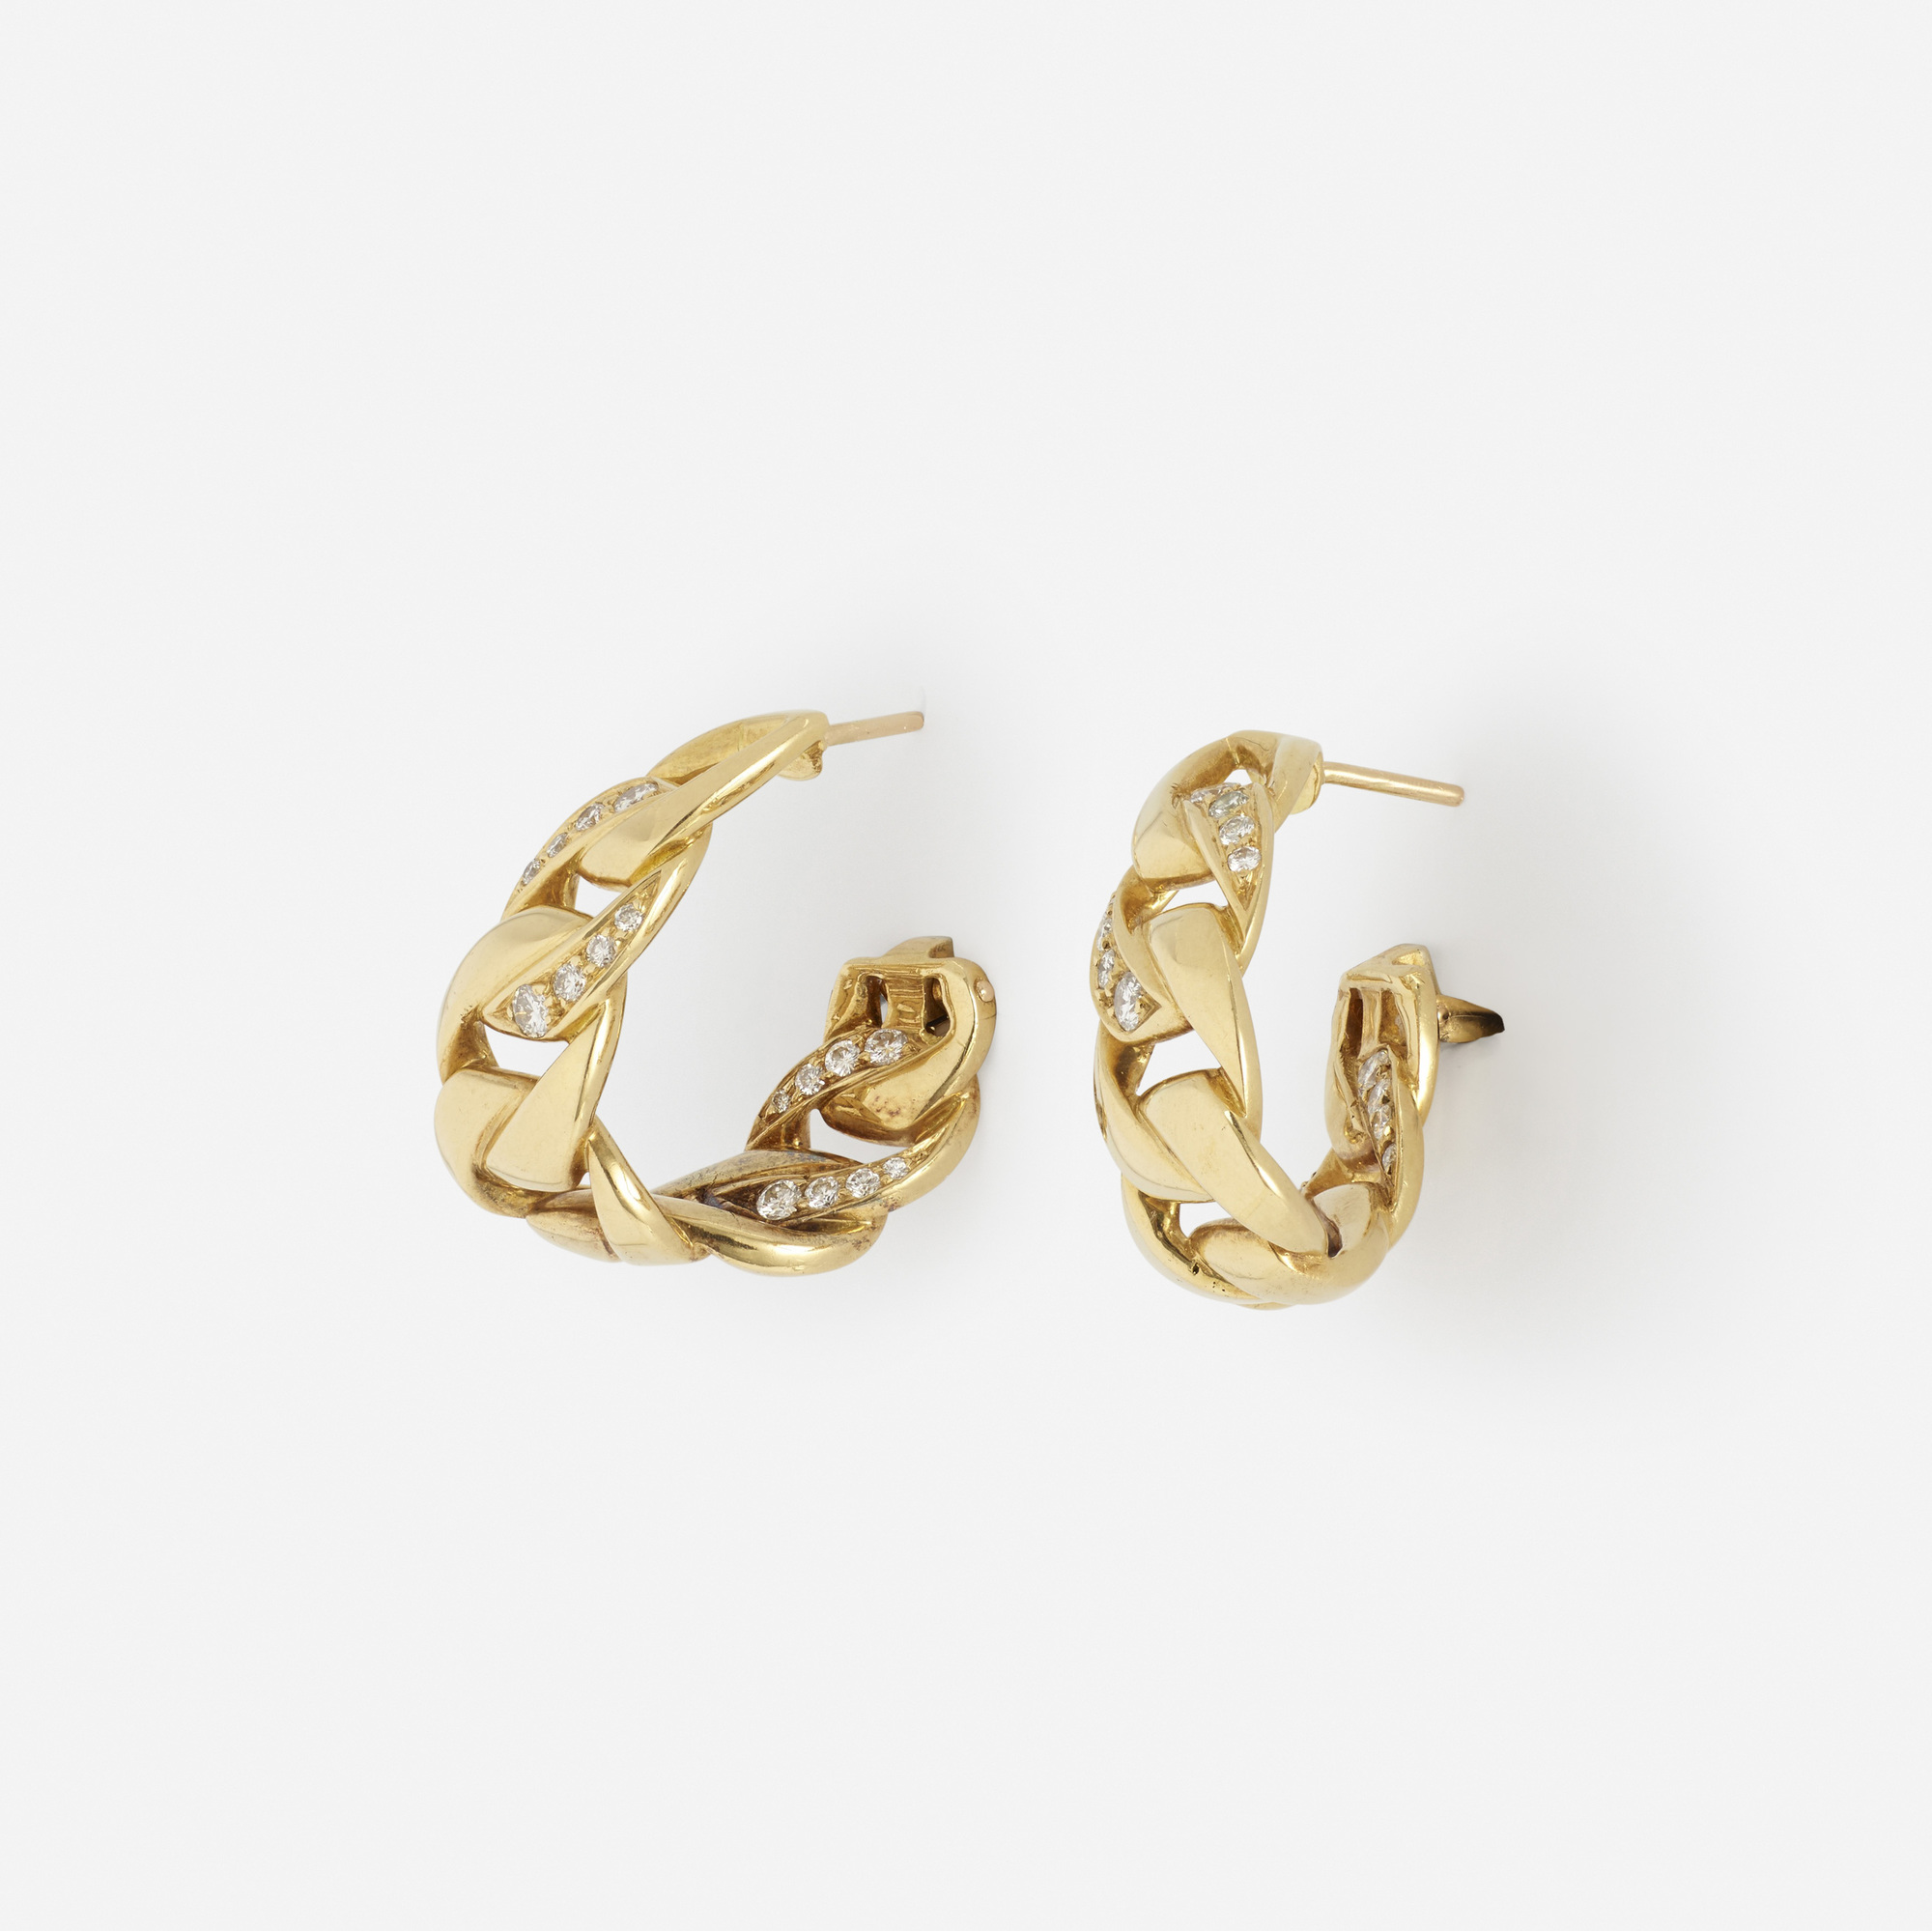 252: Cartier / A pair of gold and diamond earrings (2 of 2)